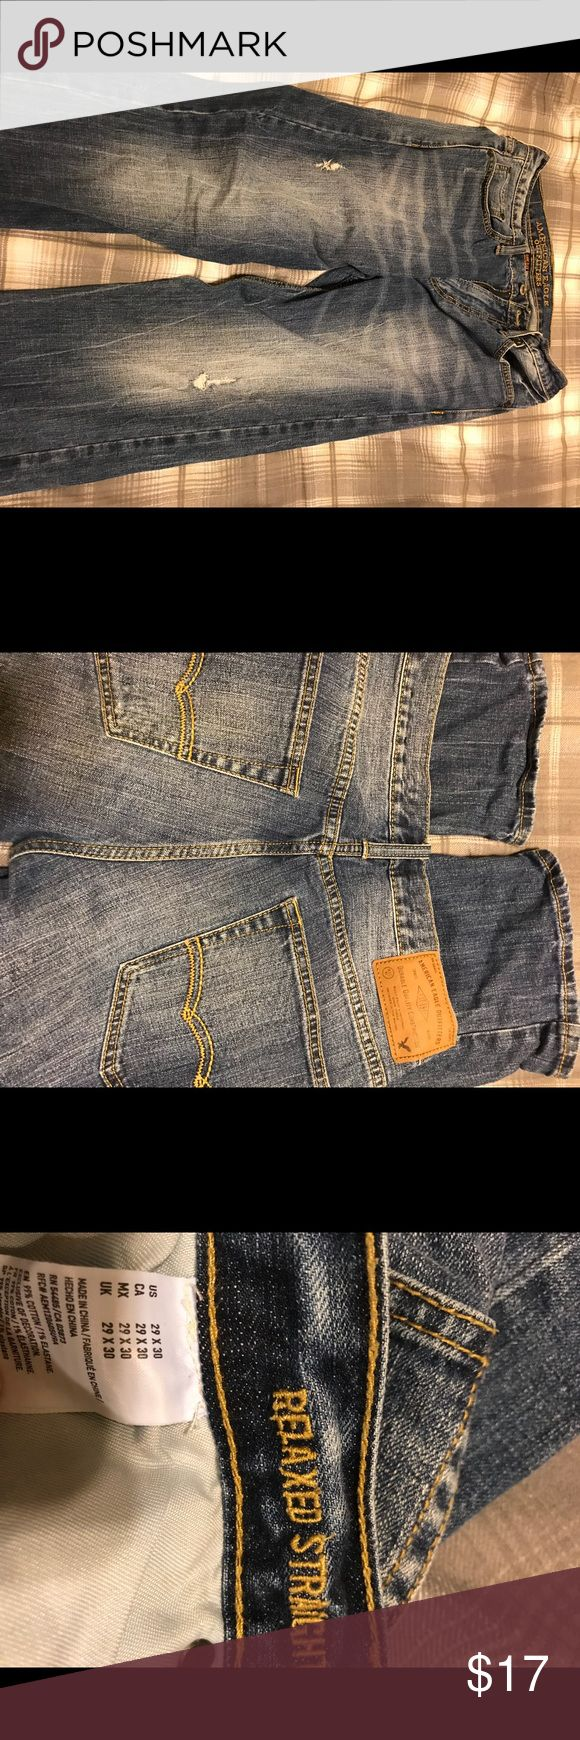 American Eagle men's 29x30 relaxed straight American Eagle men's relaxed straight jeans size 29x30. Factory distressed.  Smoke free home. American Eagle Outfitters Jeans Relaxed